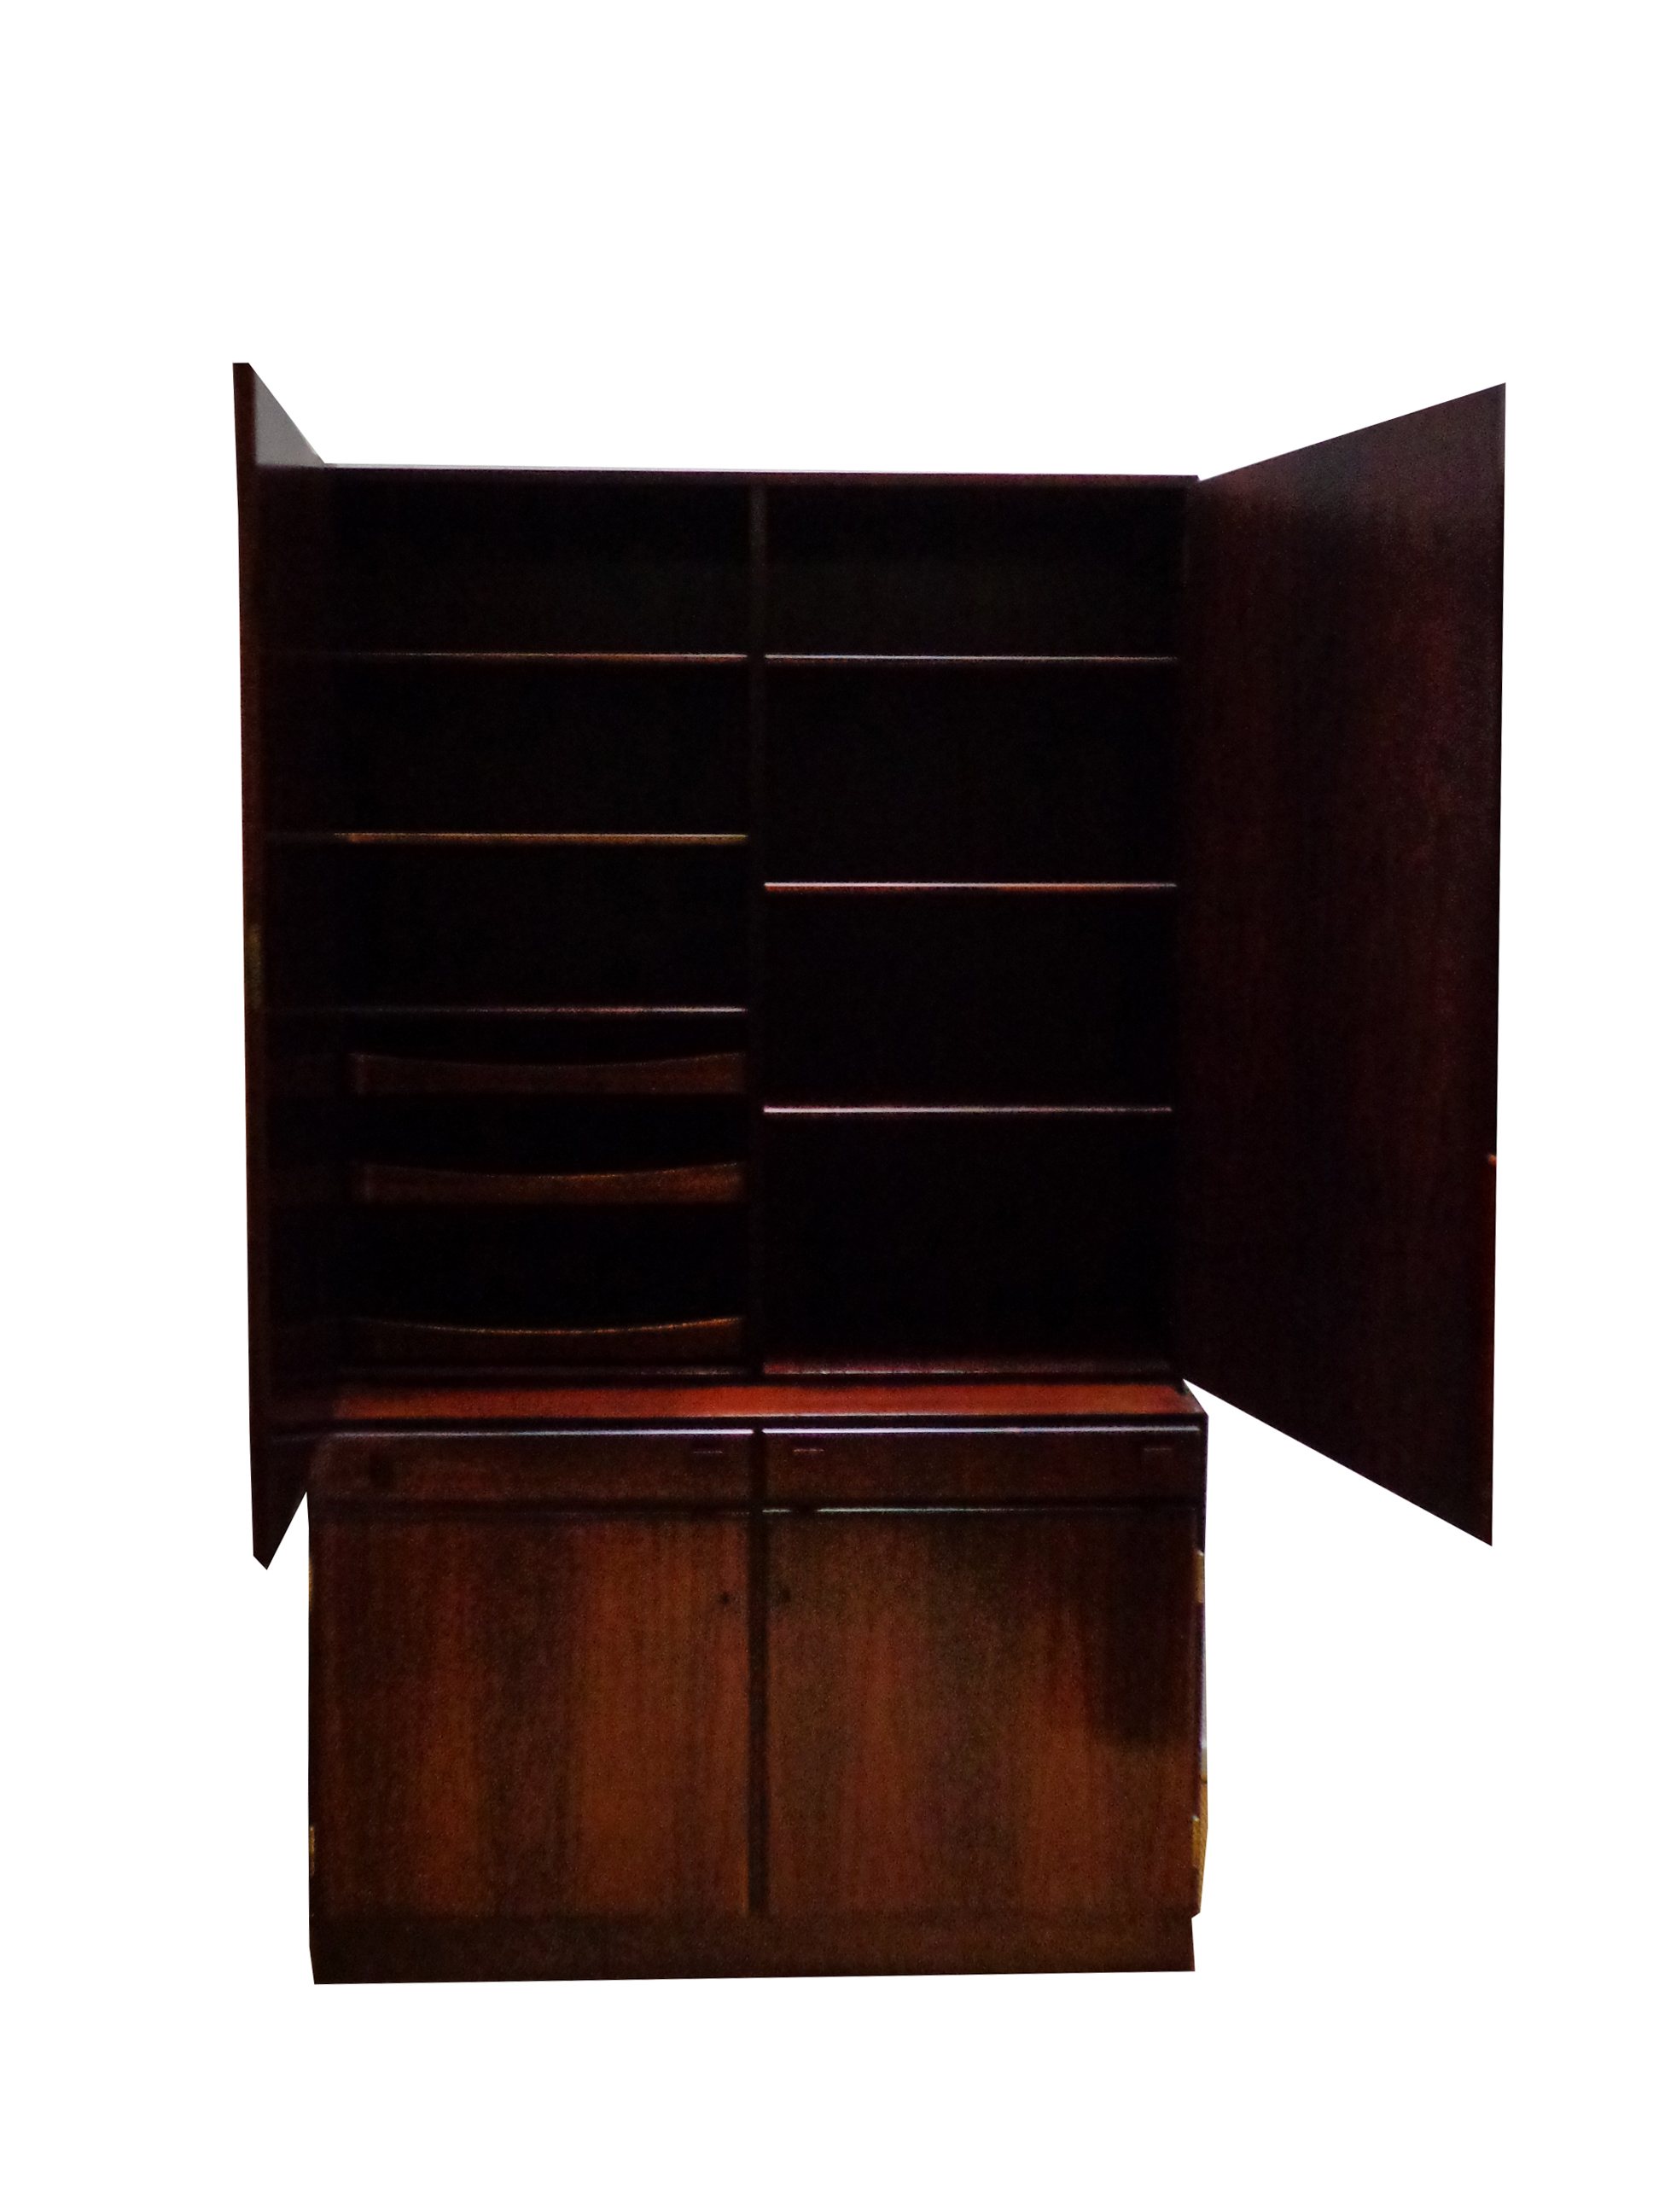 Danish Wall Console in Rosewood made by O. Bank Larsen Møbelfabrik 1960s